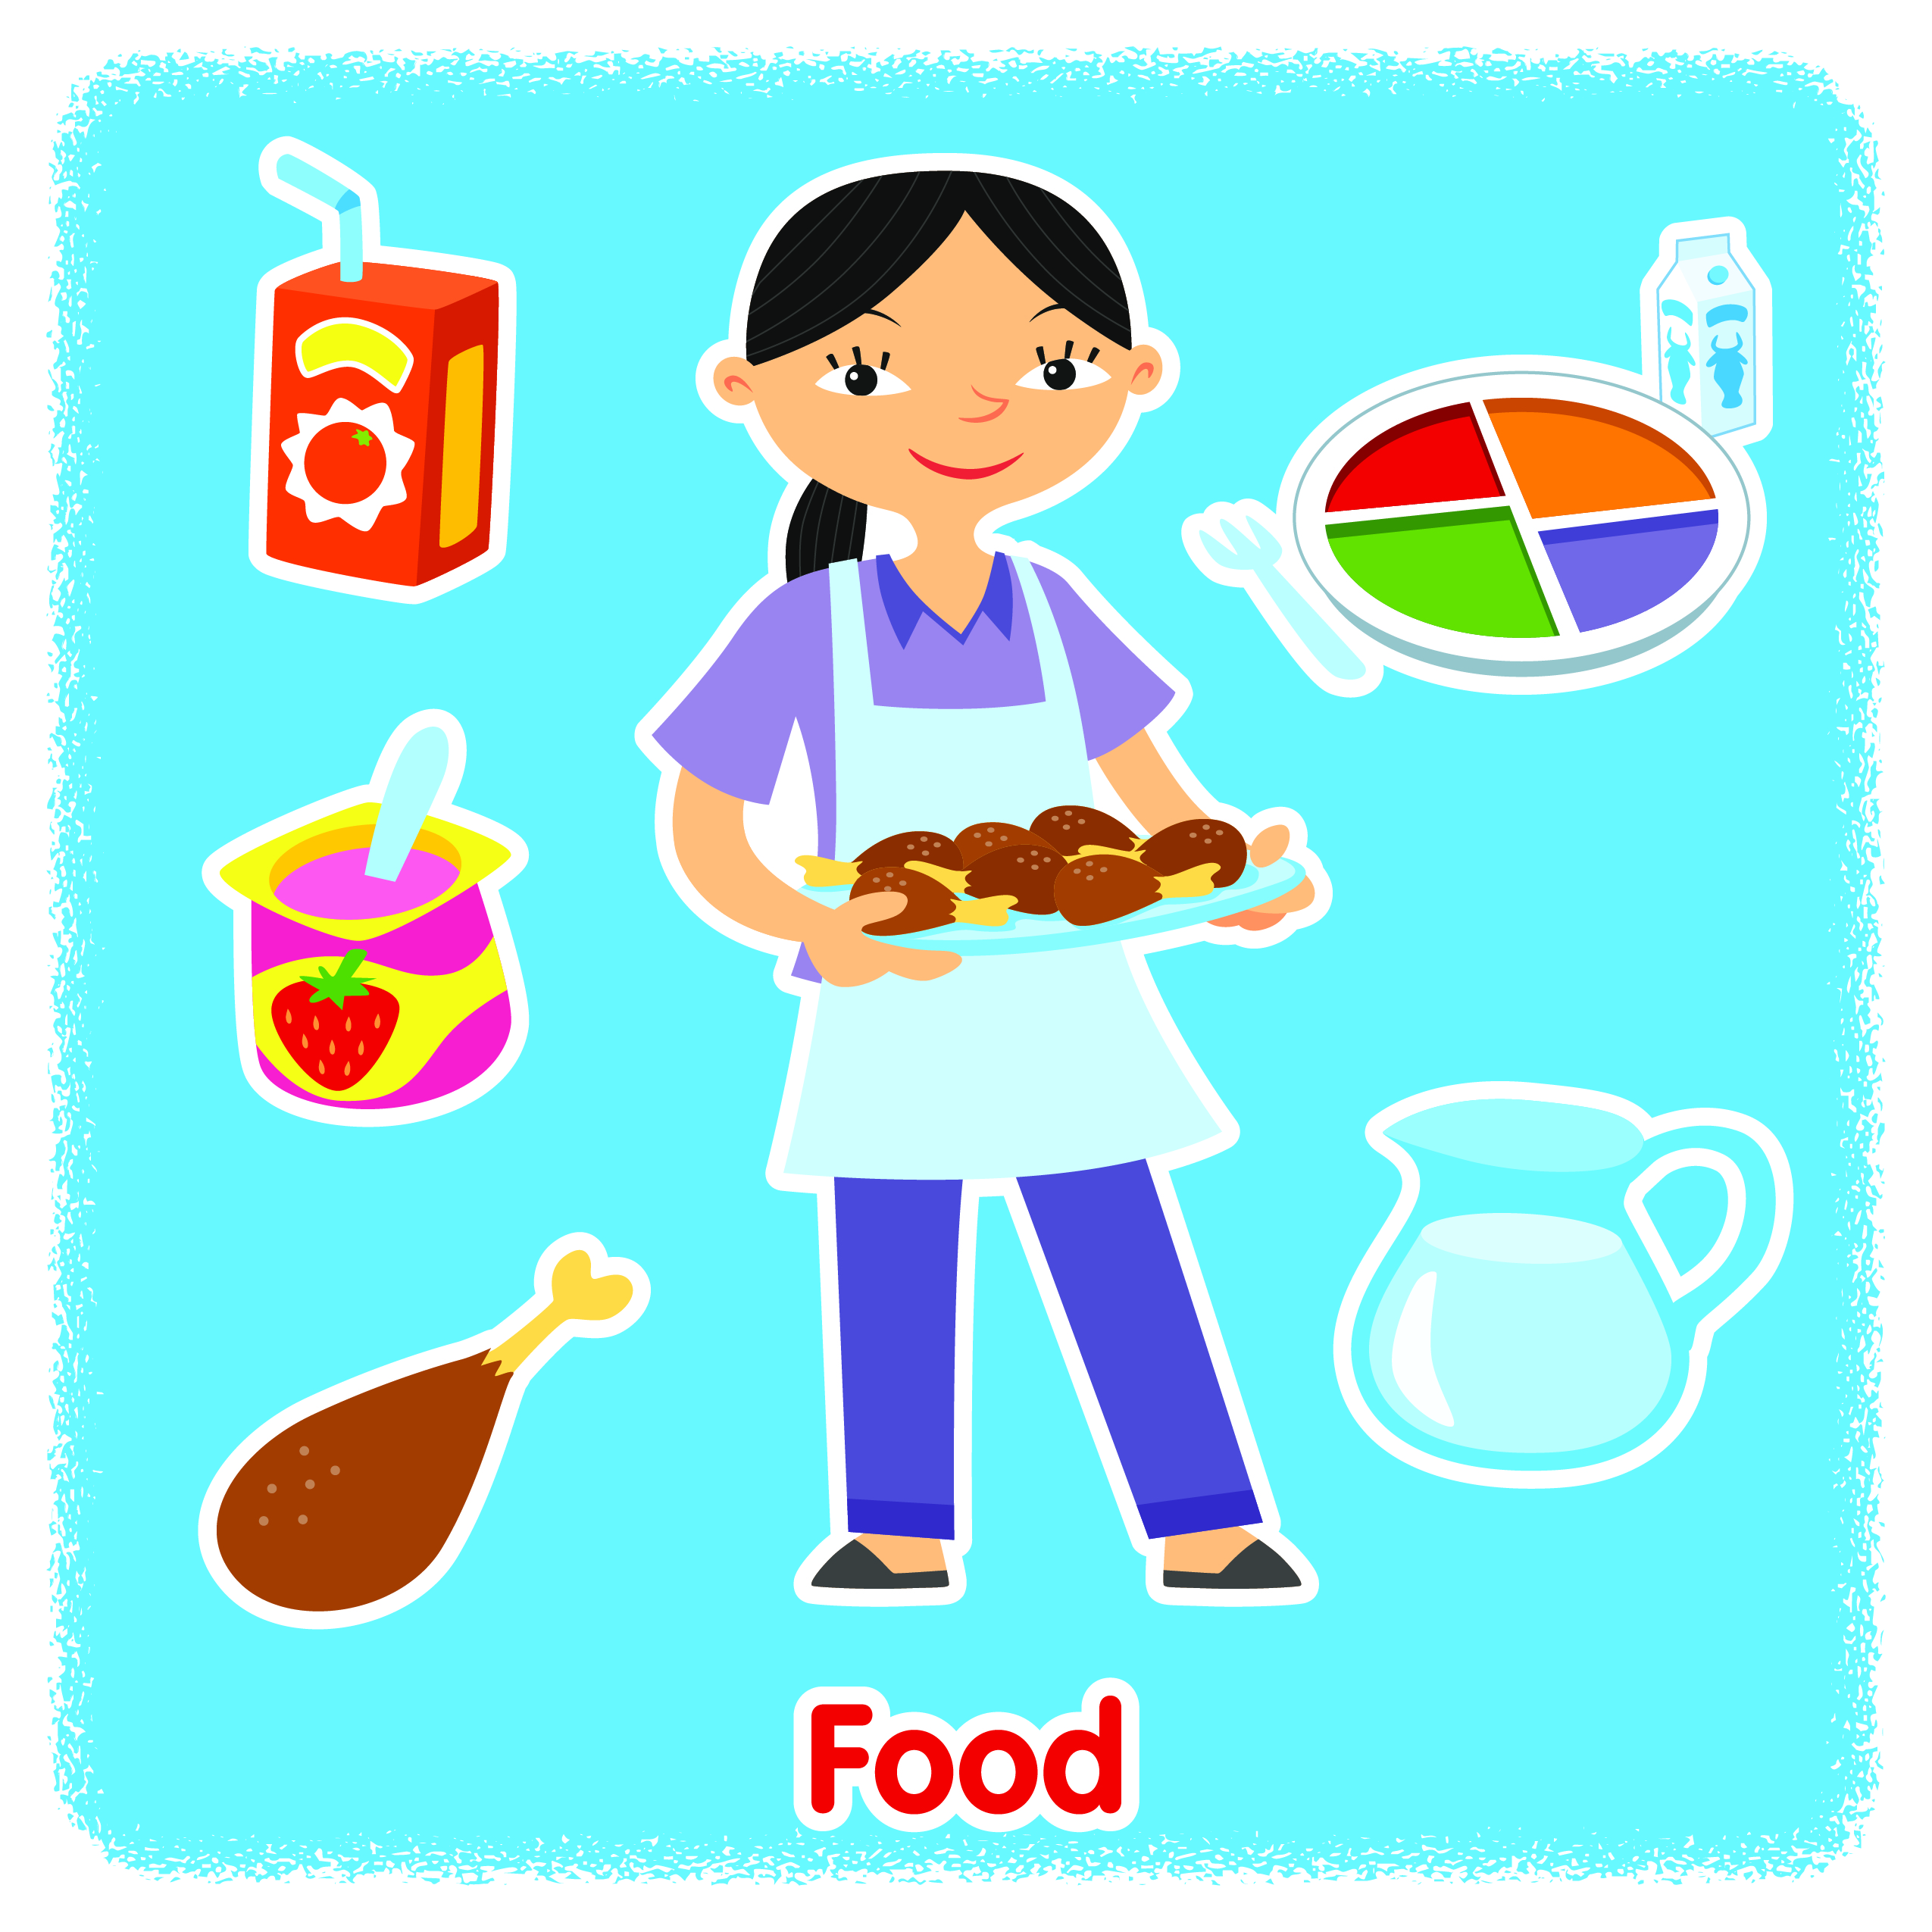 Free Food Service Cliparts, Download Free Clip Art, Free Clip Art on.